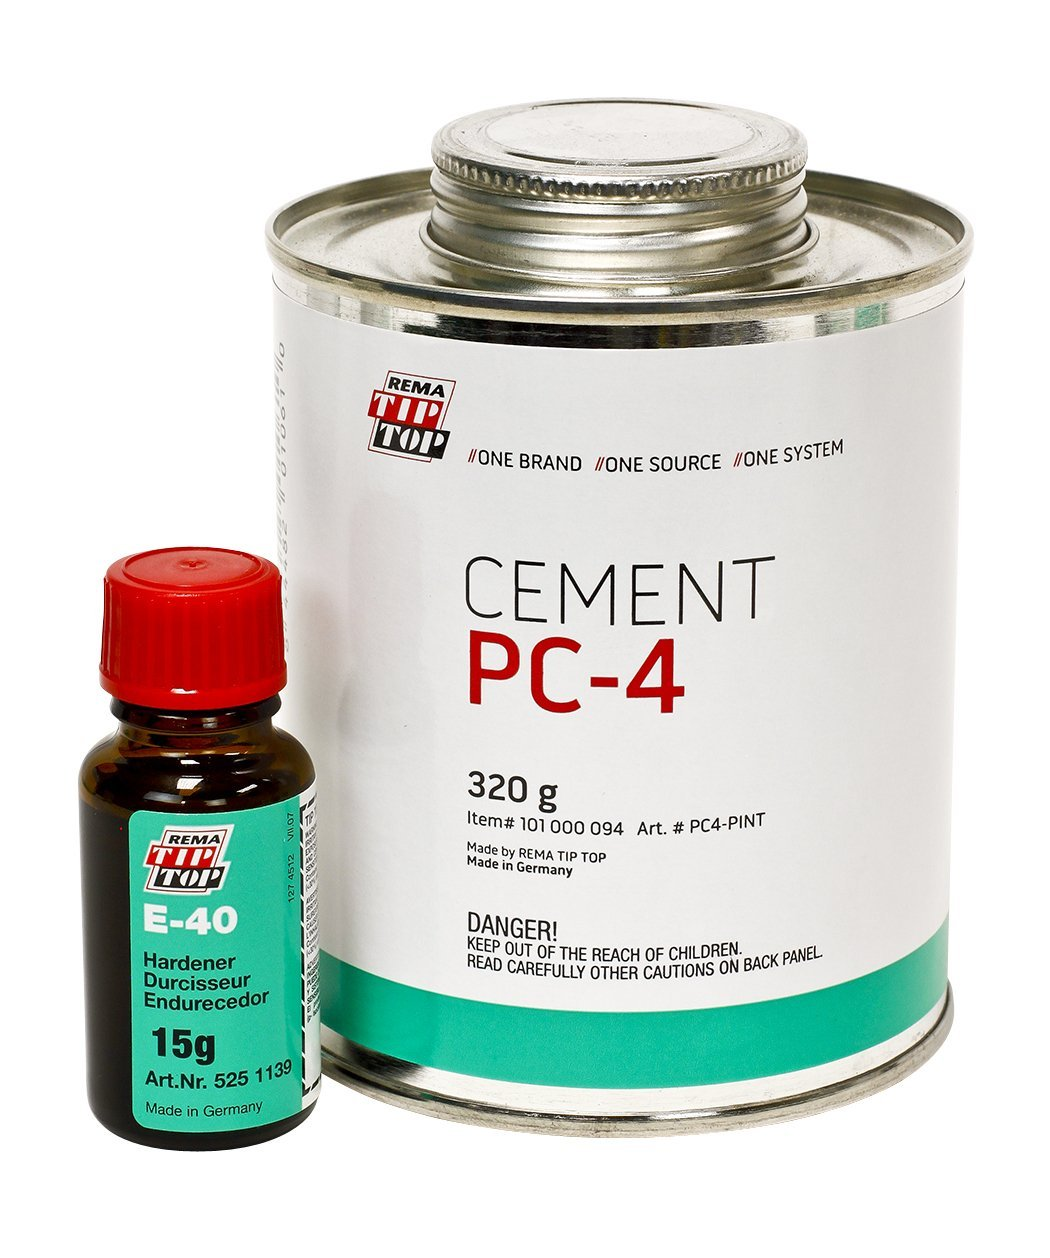 REMA TIP TOP PC-4 Cement 320g Kit (with E-40 Hardener 15 g)